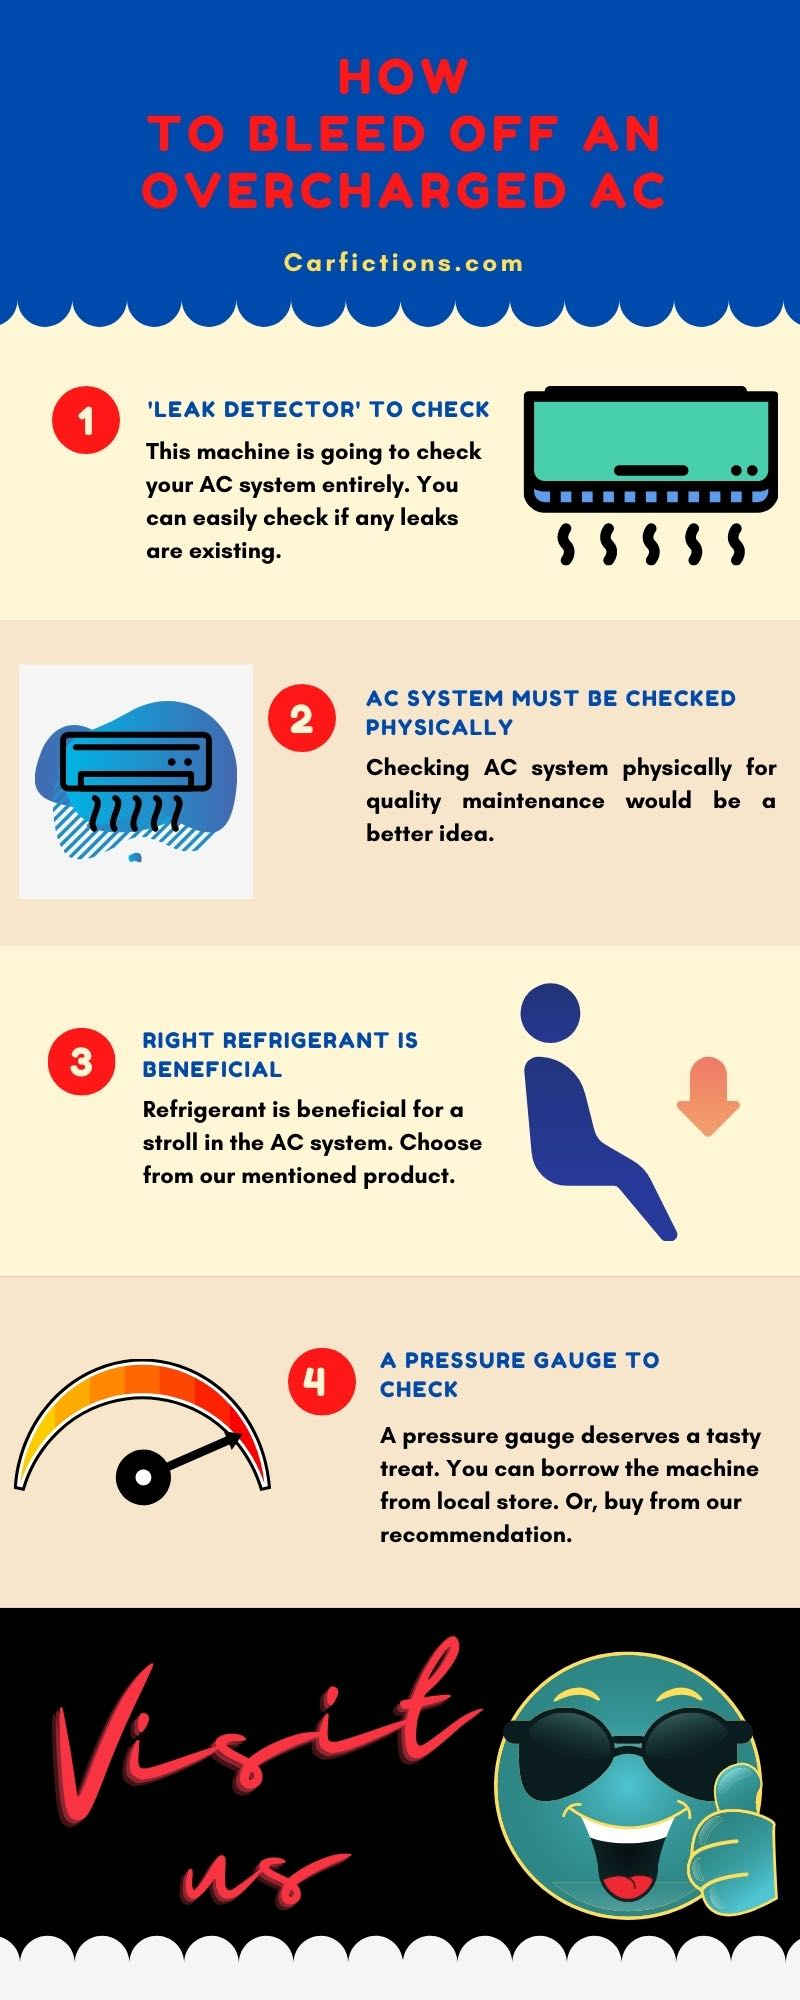 Infographic How to bleed off an overcharged AC